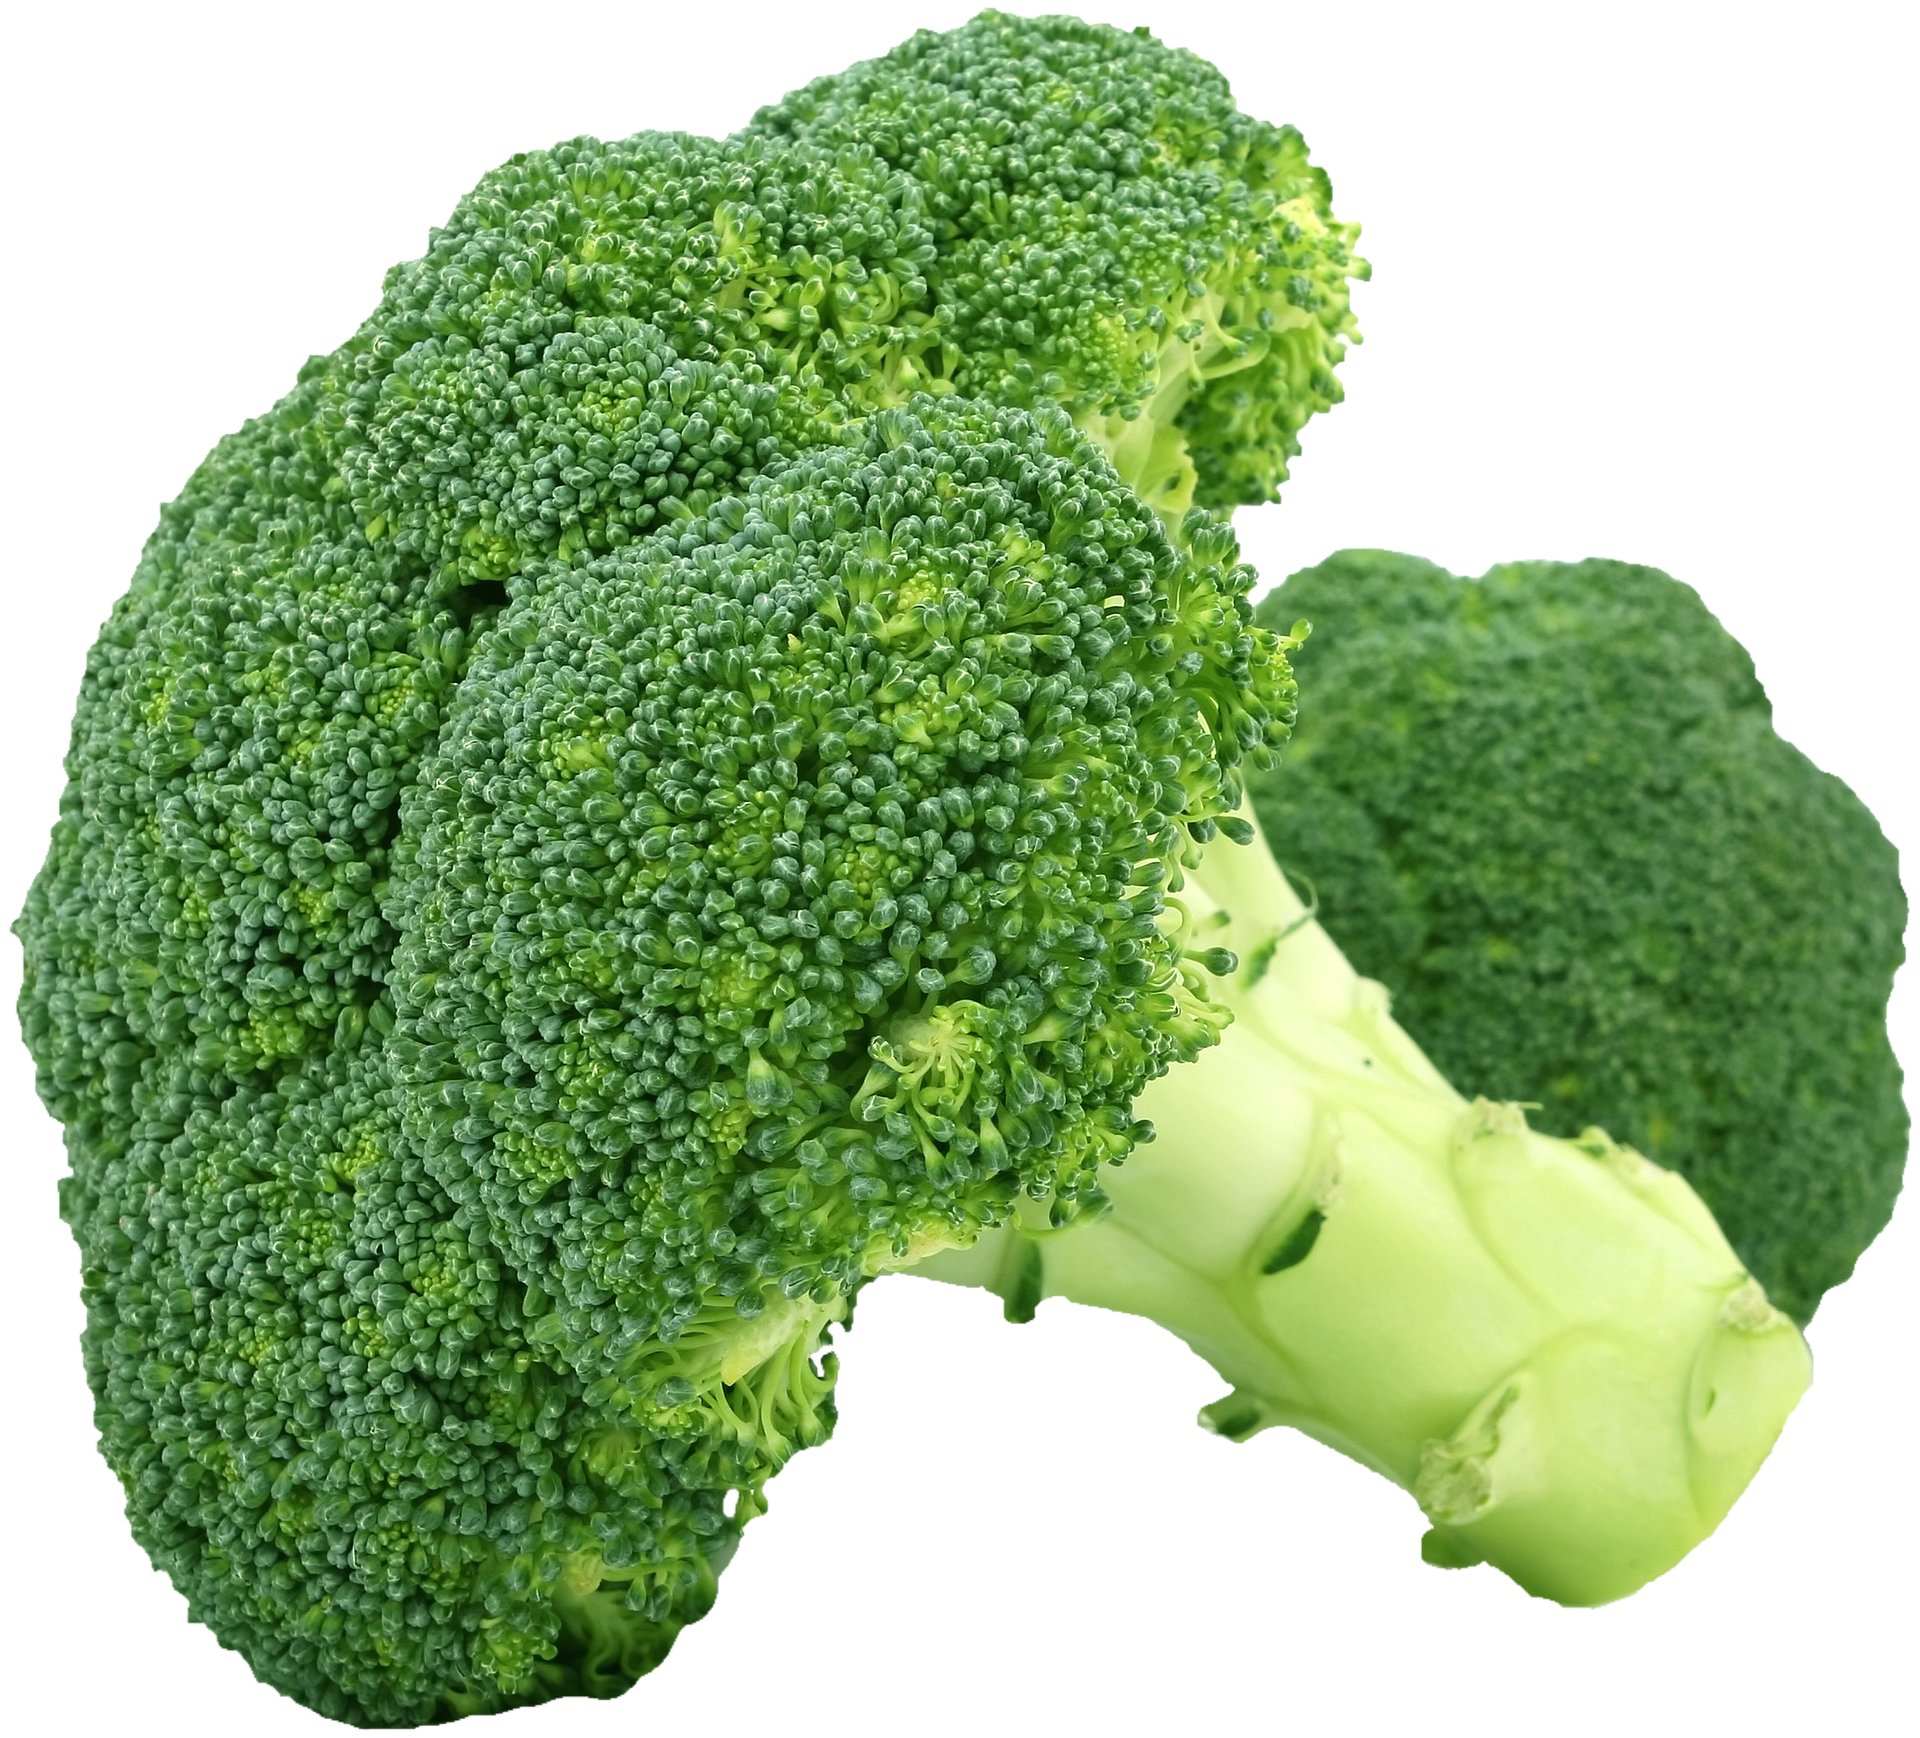 Folate deficiency creates hitherto unknown problems in connection with cell division